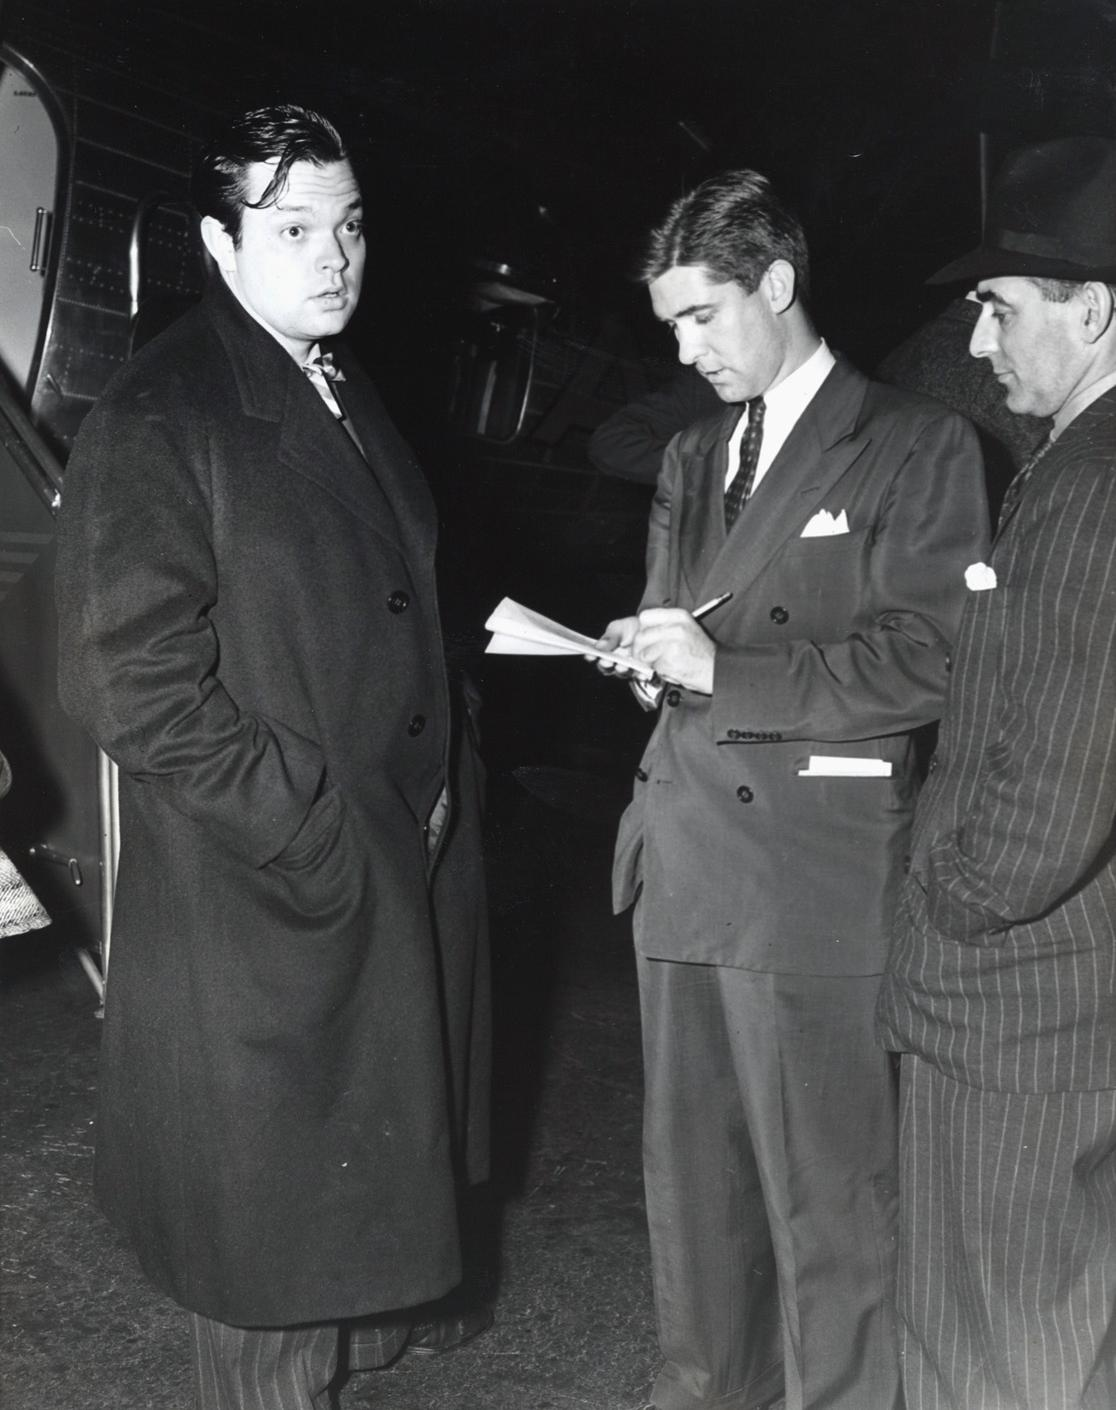 Orson Welles arriving for the New York premiere of Citizen Kane on May 1, 1941.